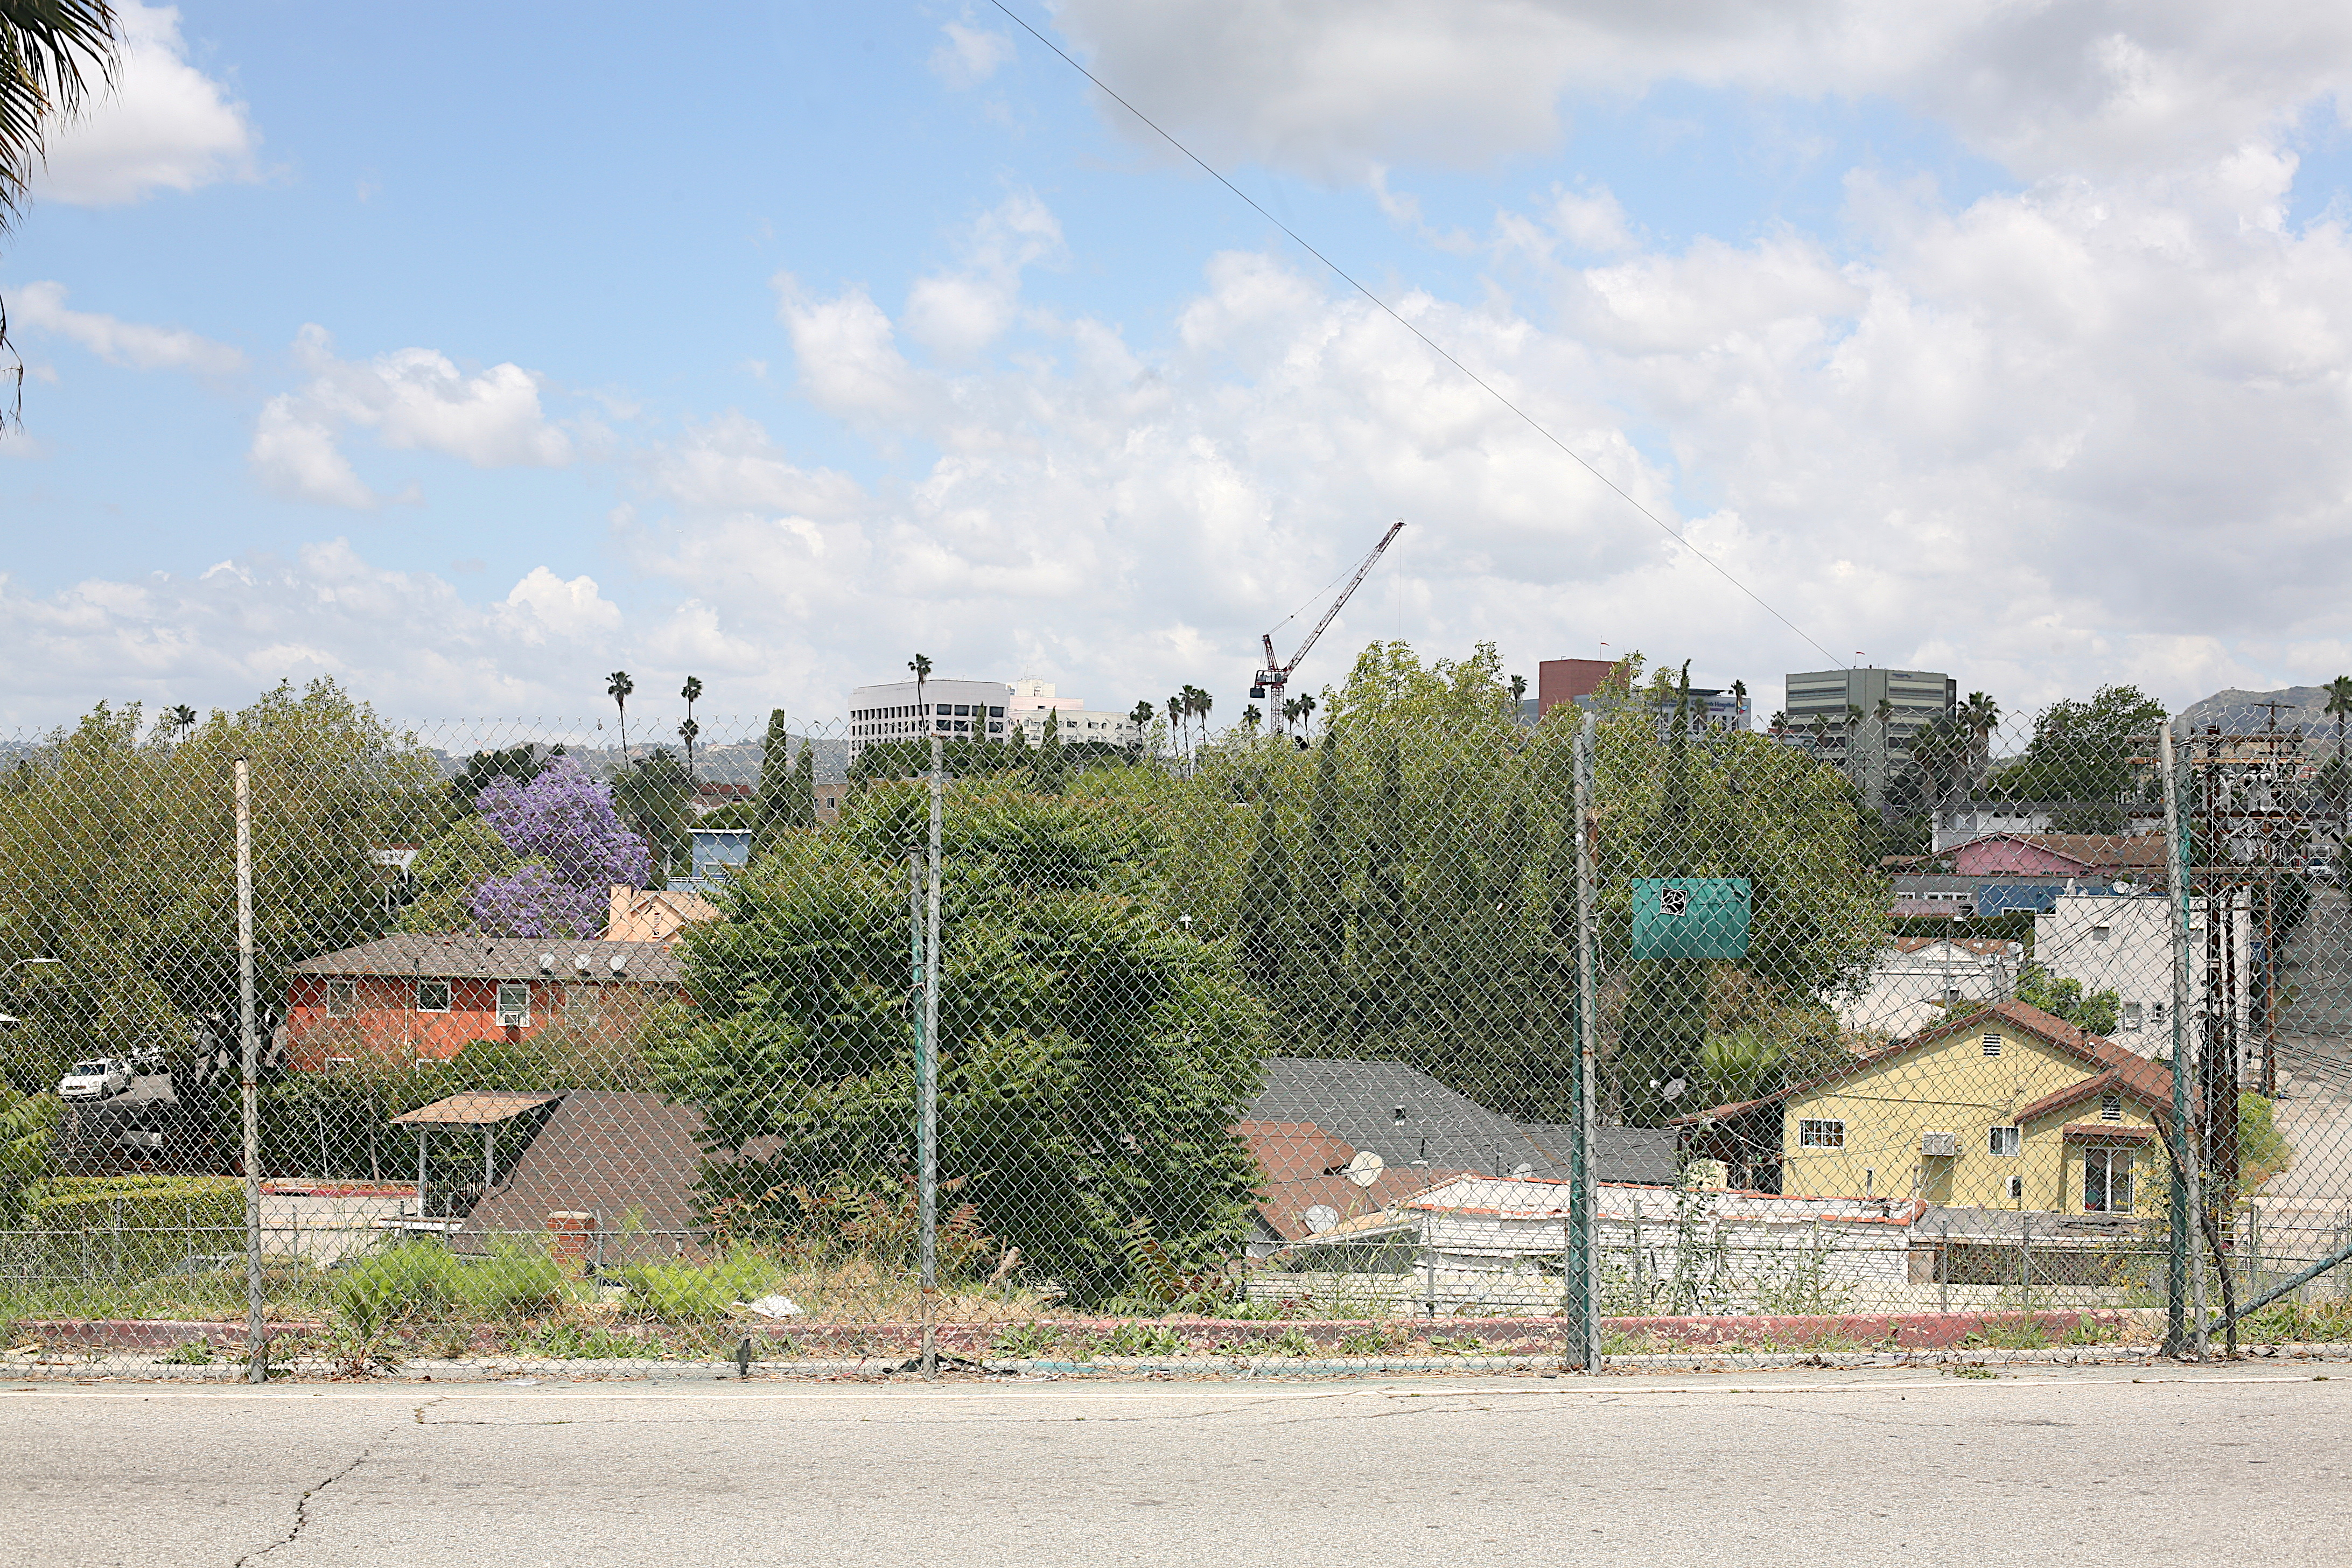 East Hollywood, Los Angeles, as seen from Manzanita street